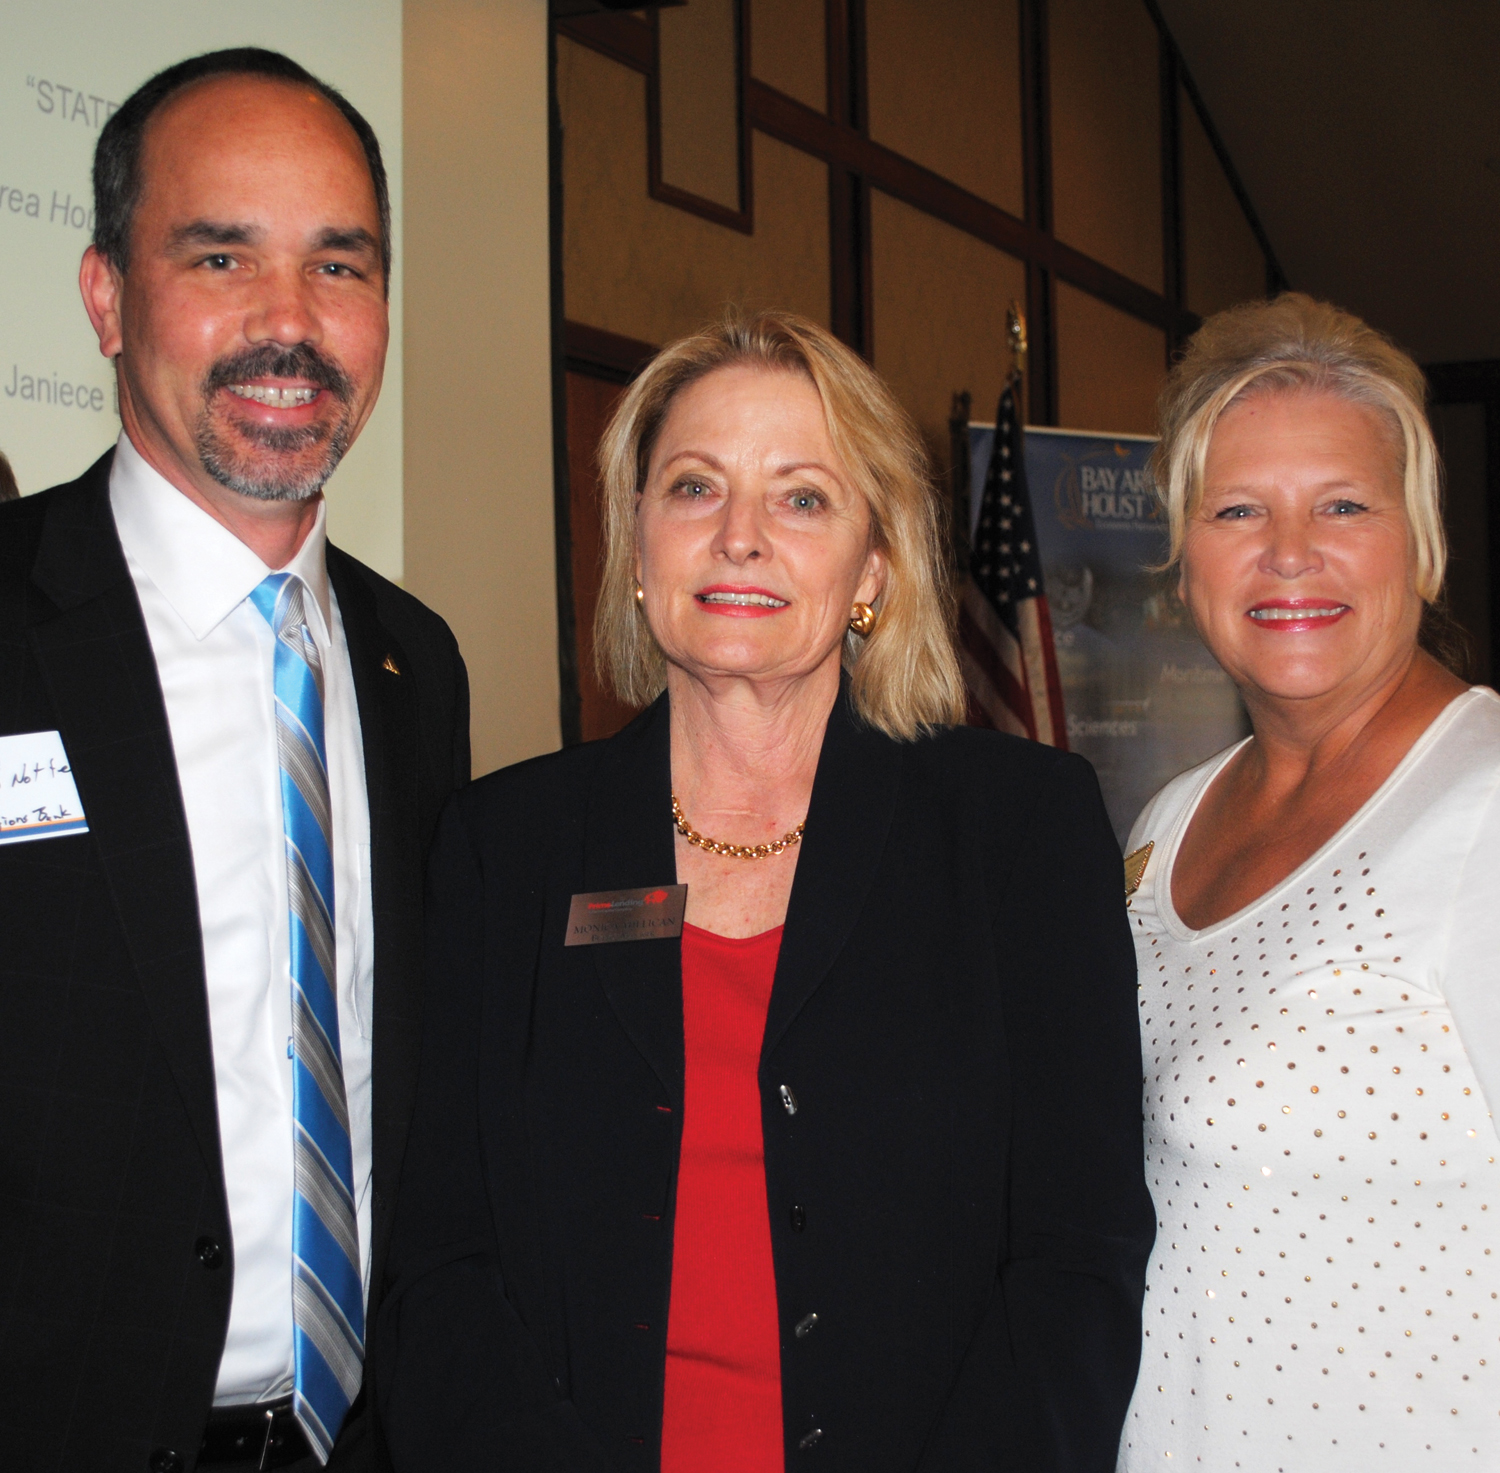 Early arrivals at BAHEP's State of the Port meeting at Lakewood Yacht Club included Brad Notter of Regions Bank; Monica Millican, PrimeLending's Bay Area branch manager; and Fay Picard, district director for State Rep. Greg Bonnen.